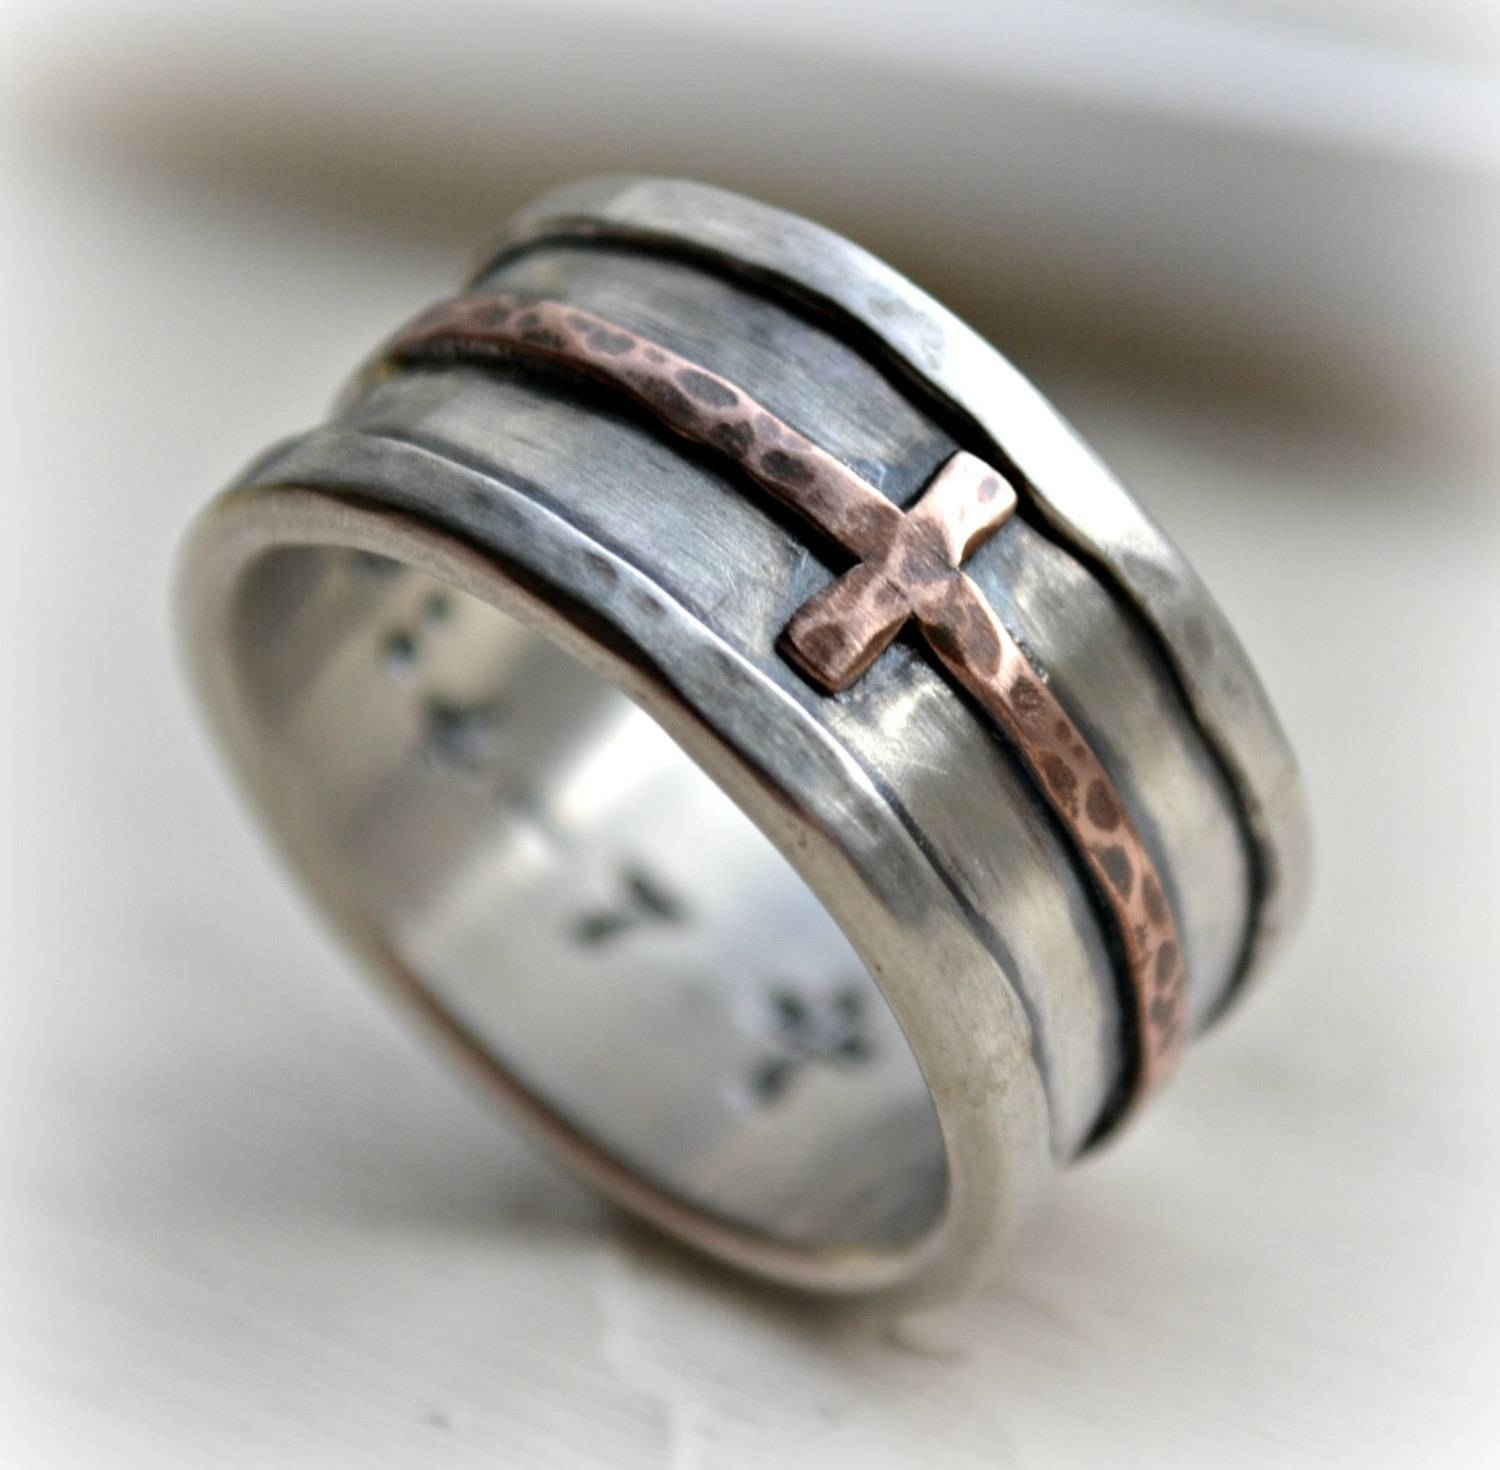 Mens Cross Wedding Band Rustic Hammered Cross Ring Oxidized With Regard To Cross Wedding Bands (Gallery 5 of 15)